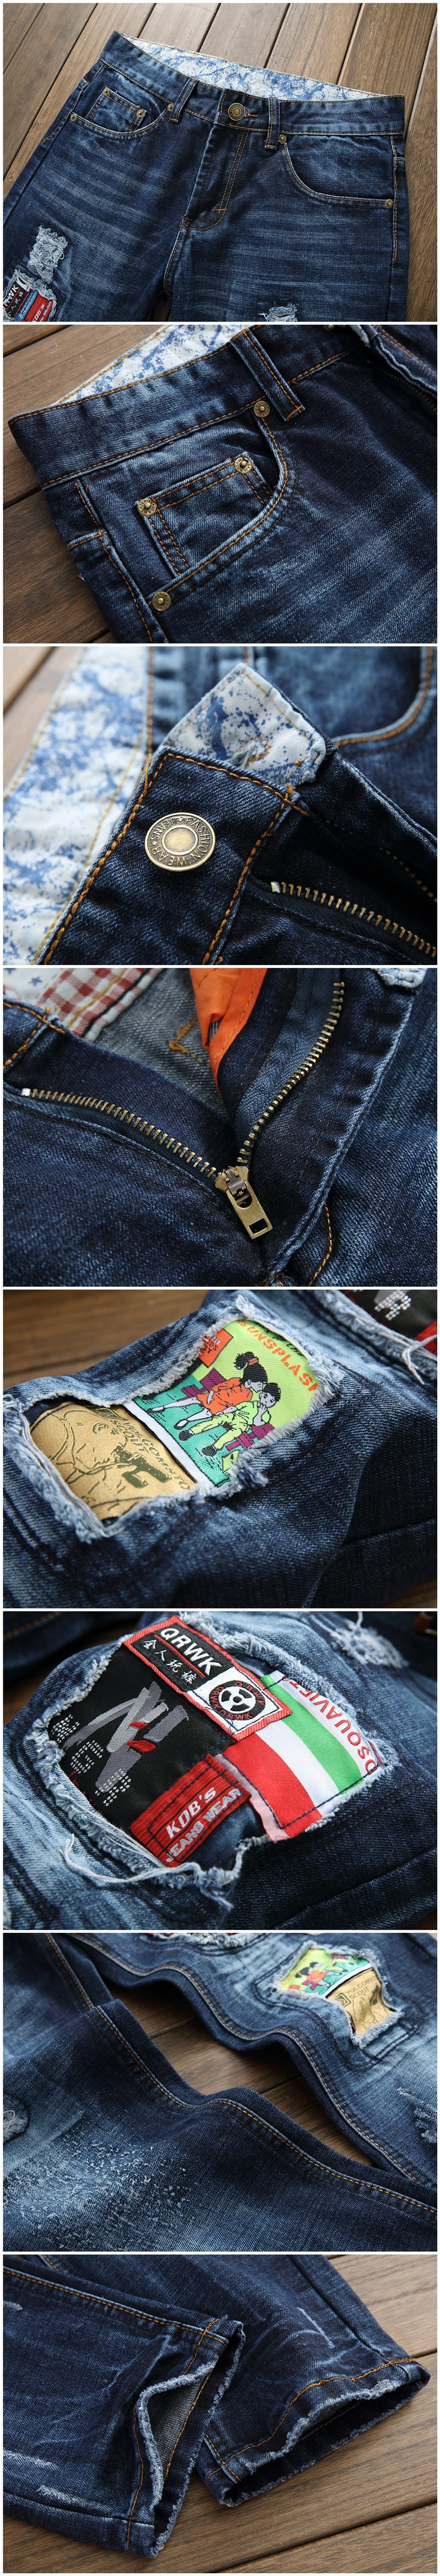 2016 Designer Biker Jeans High Quality Patchwork Calca Jeans Masculina Skinny Denim Overalls Mens Pants Brand Clothing Plus Size